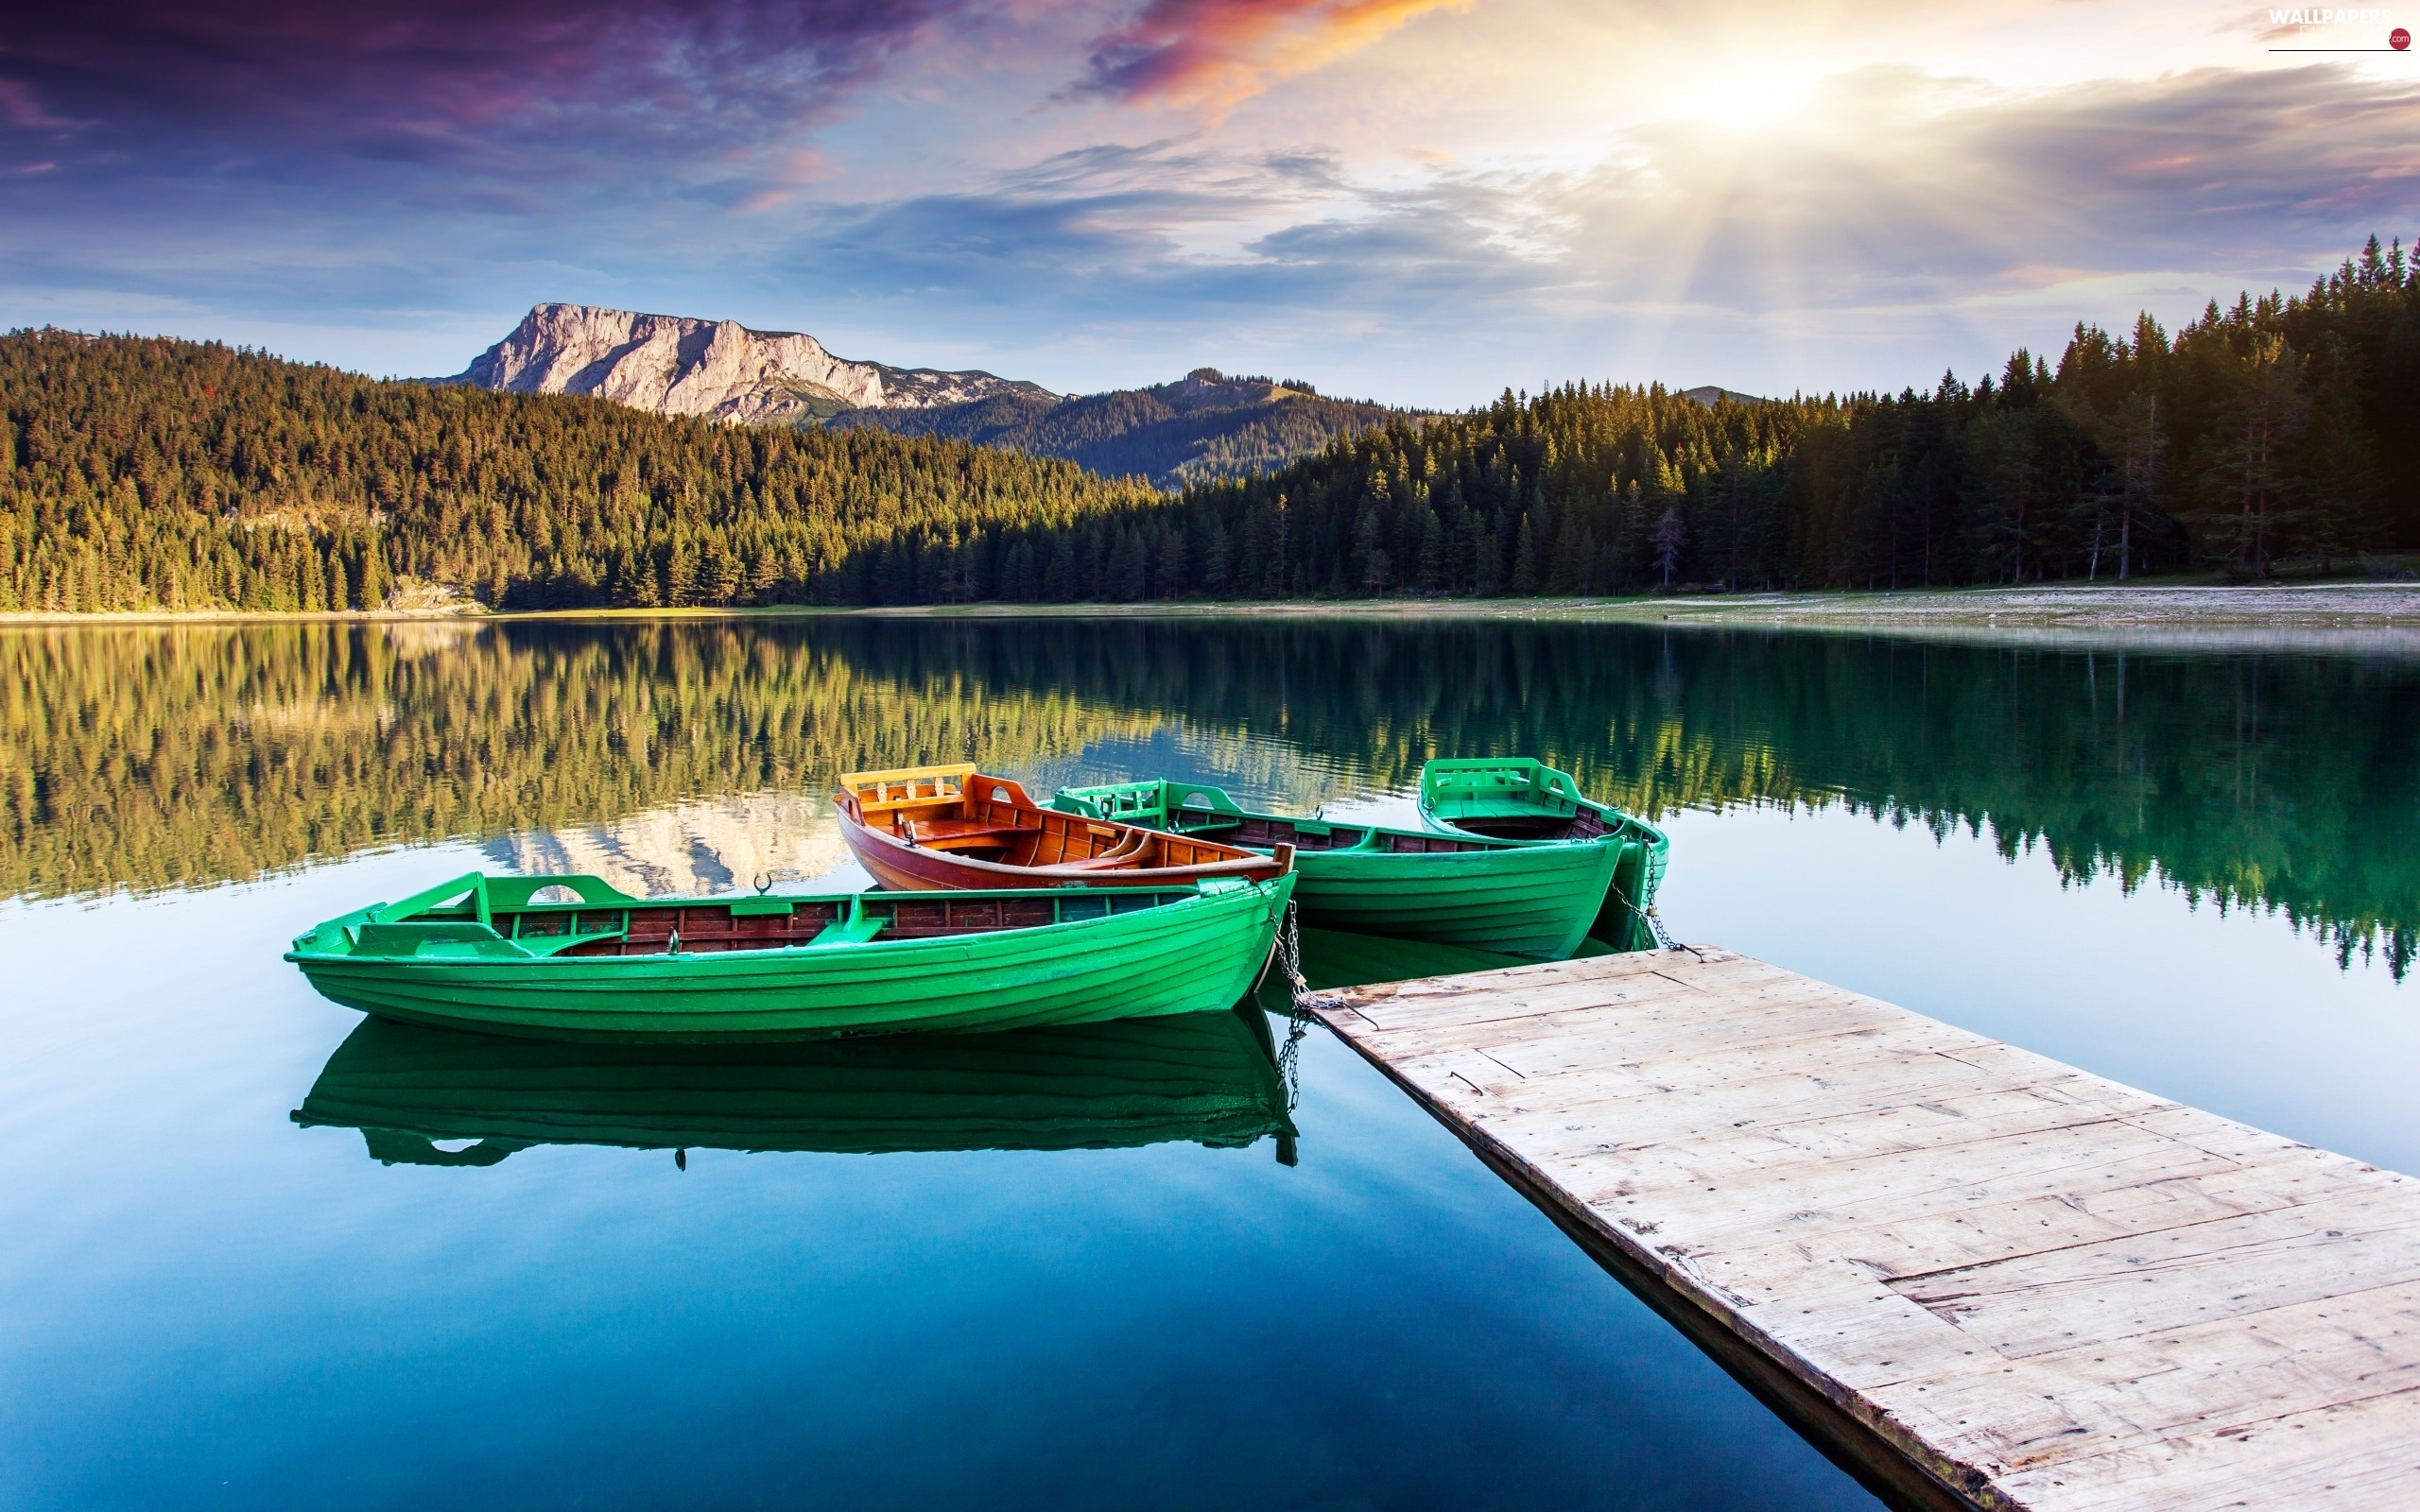 rays, Mountains, woods, lake, sun, boats